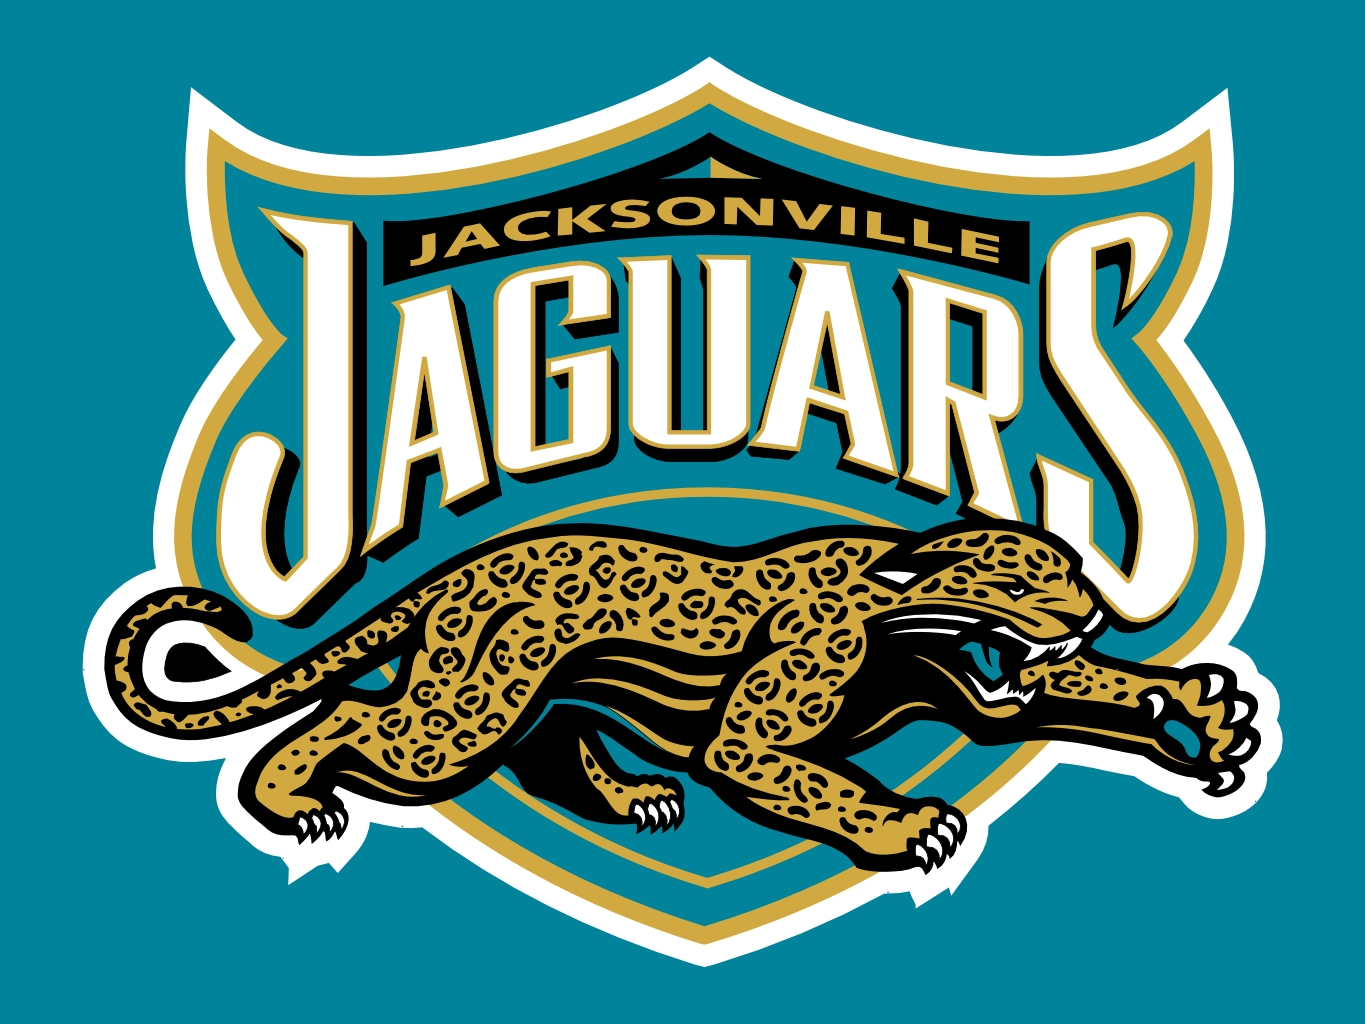 jacksonville jaguars new logo wallpapers - photo #24